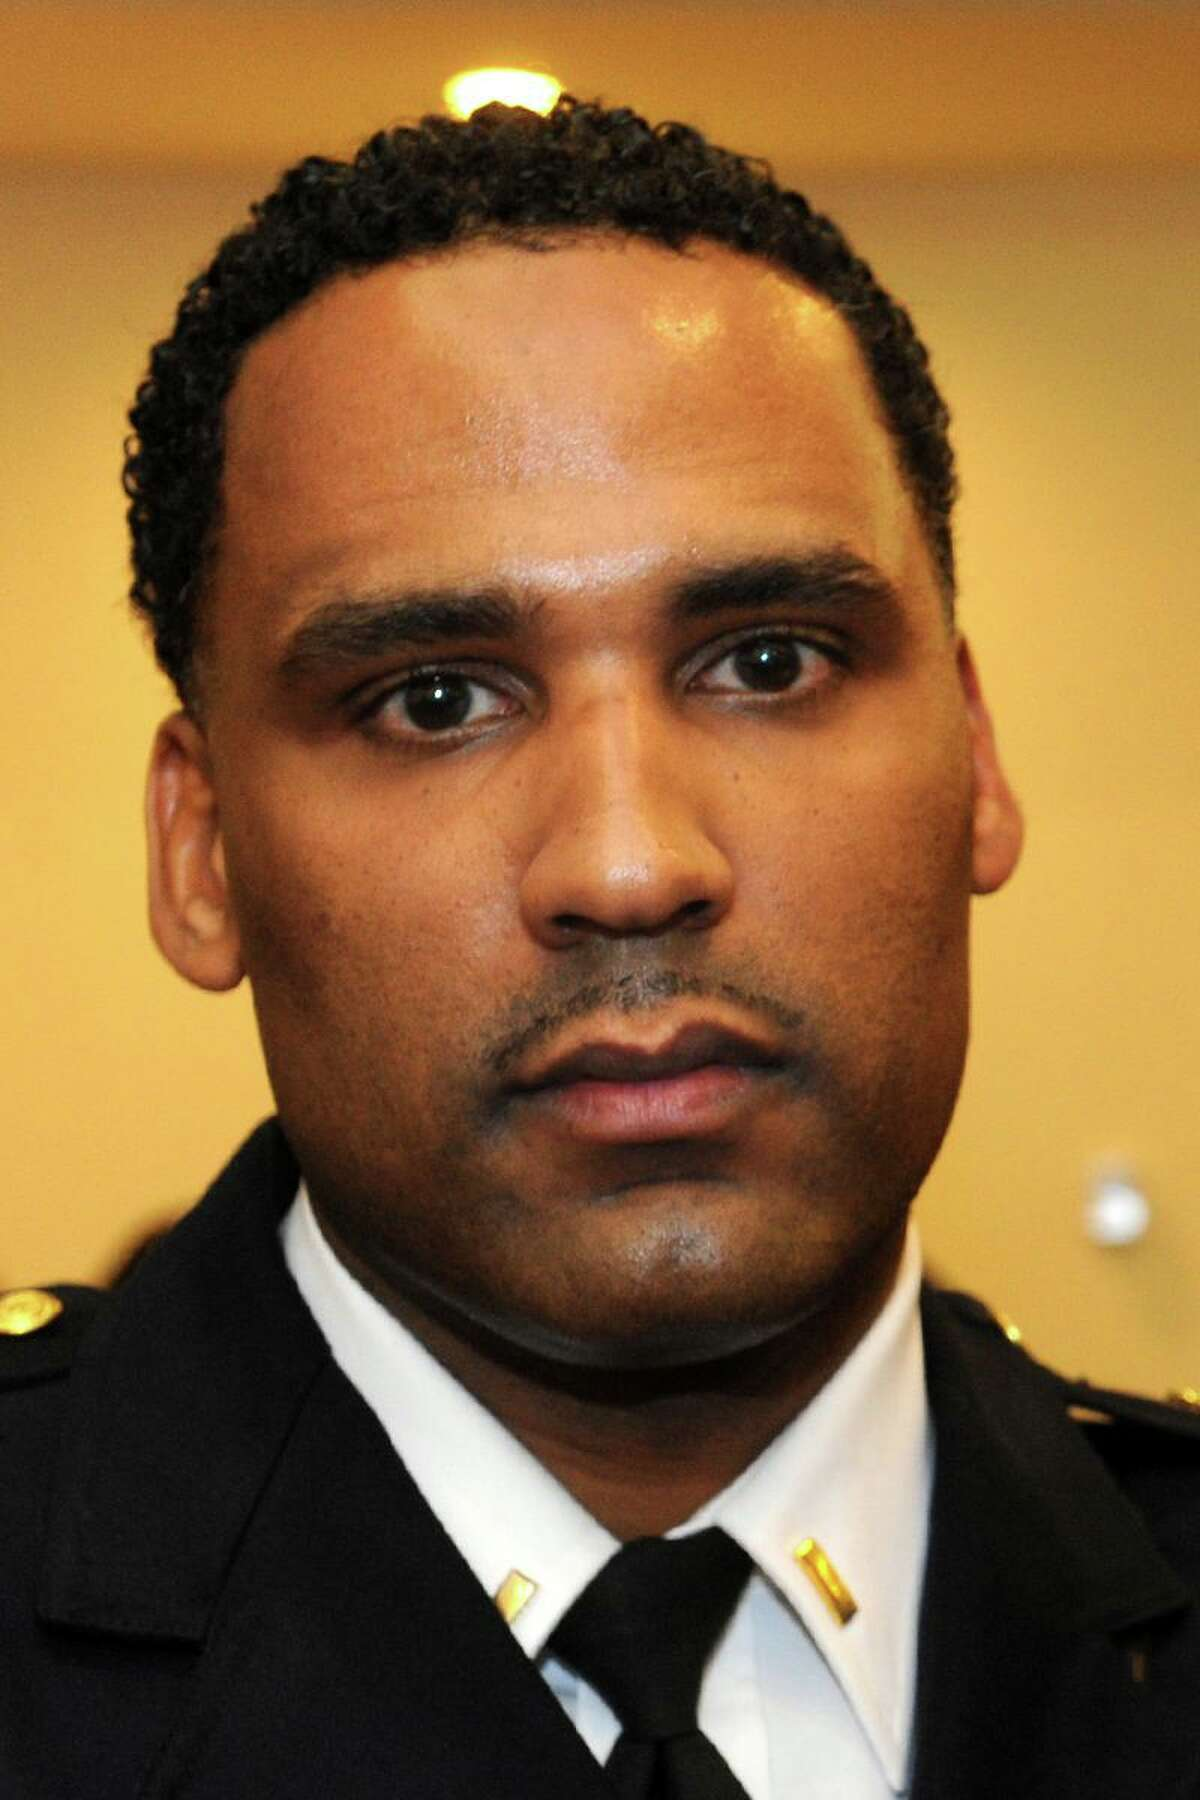 Bridgeport Police Capt. Lonnie Blackwell has filed a federal lawsuit against Acting Police Chief Rebeca Garcia.